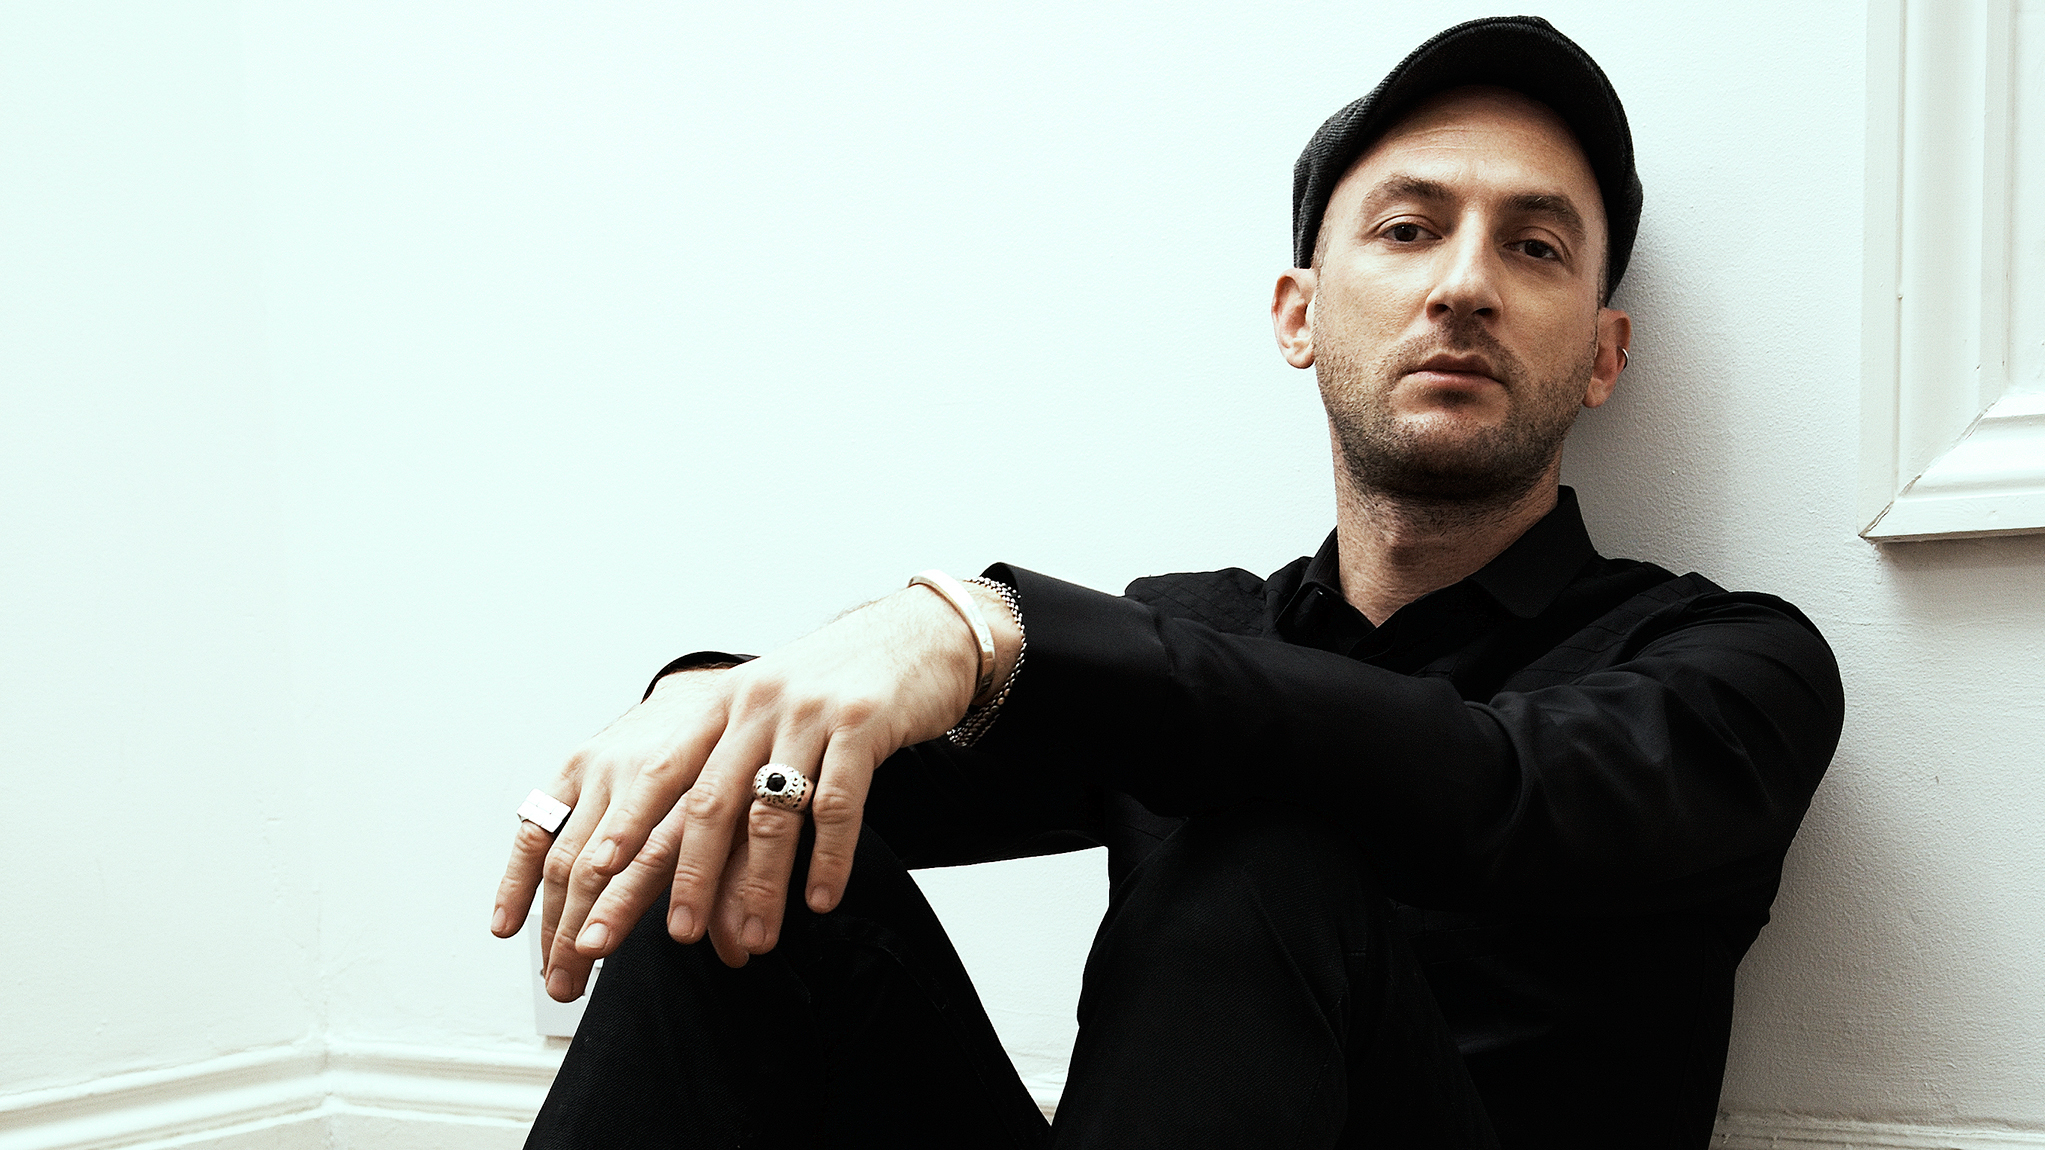 Damian Lazarus on the magic of Mexico, Alejandro Jodorowsky and playing on the moon